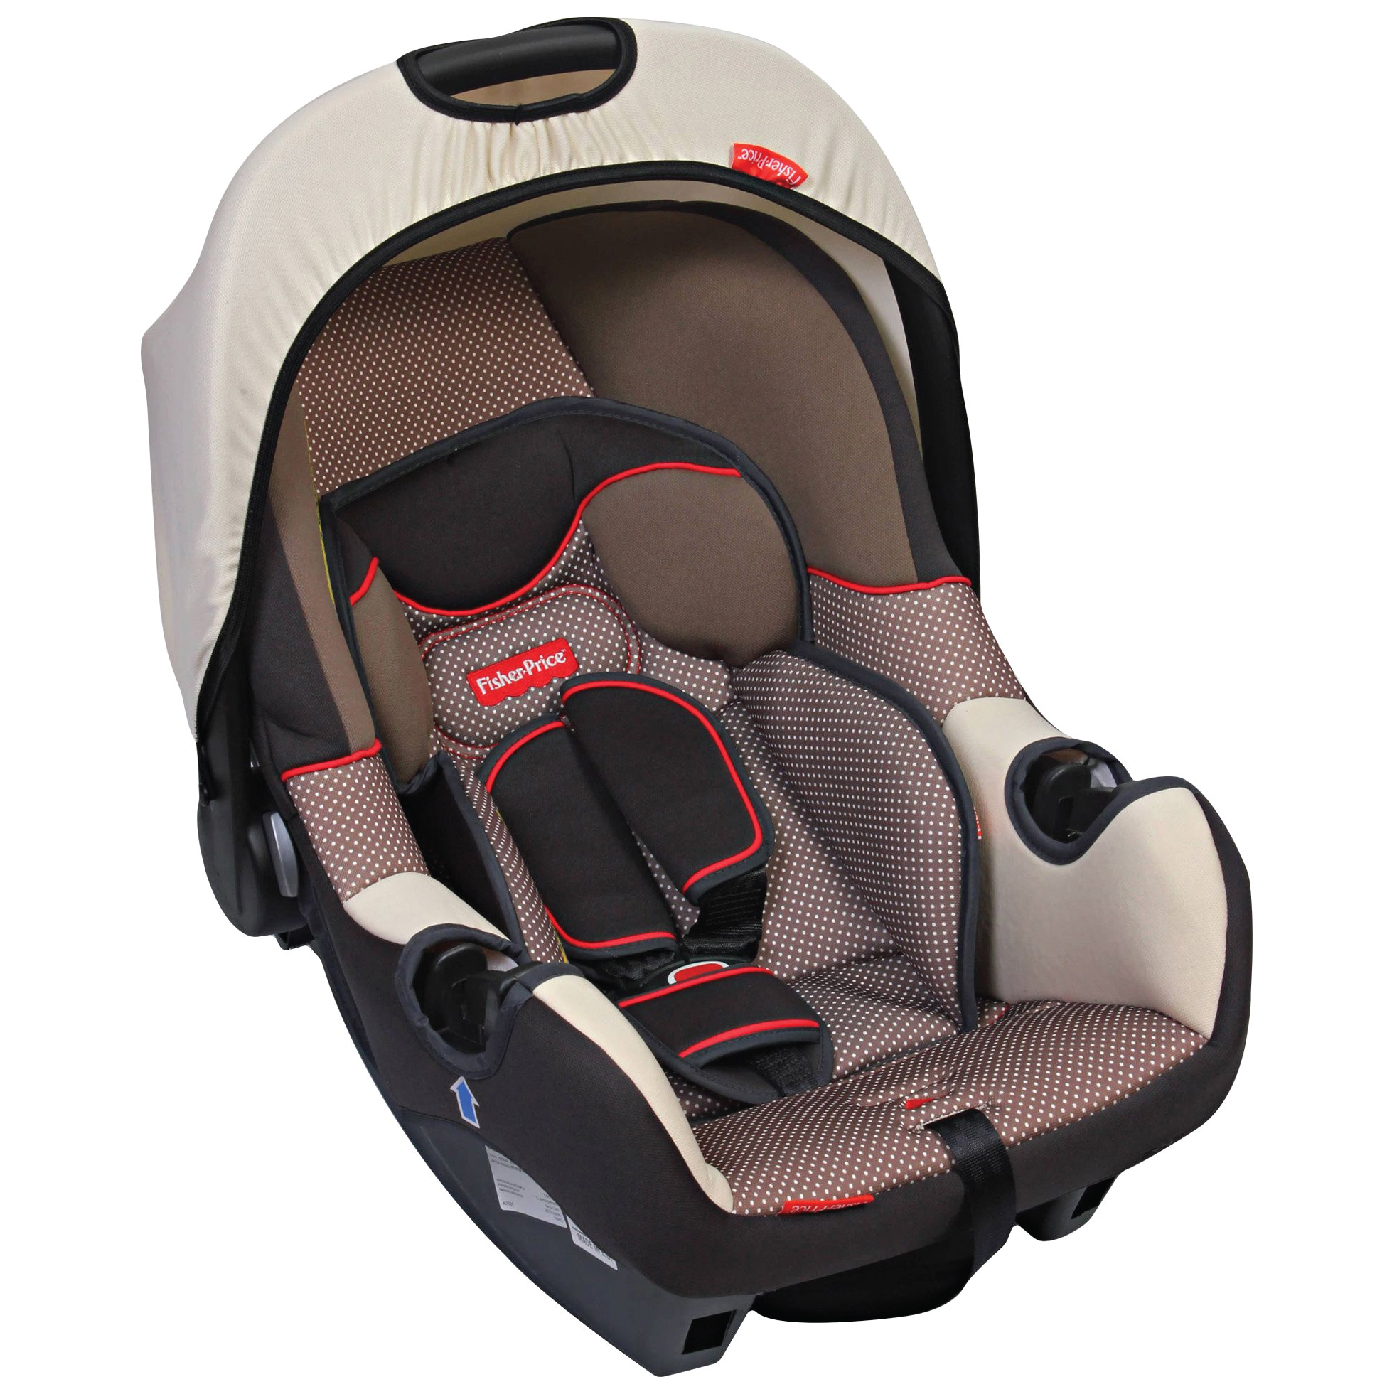 FISHER-PRICE] Car Seat - BEONE SAN (end 8/18/2018 12:25 PM)